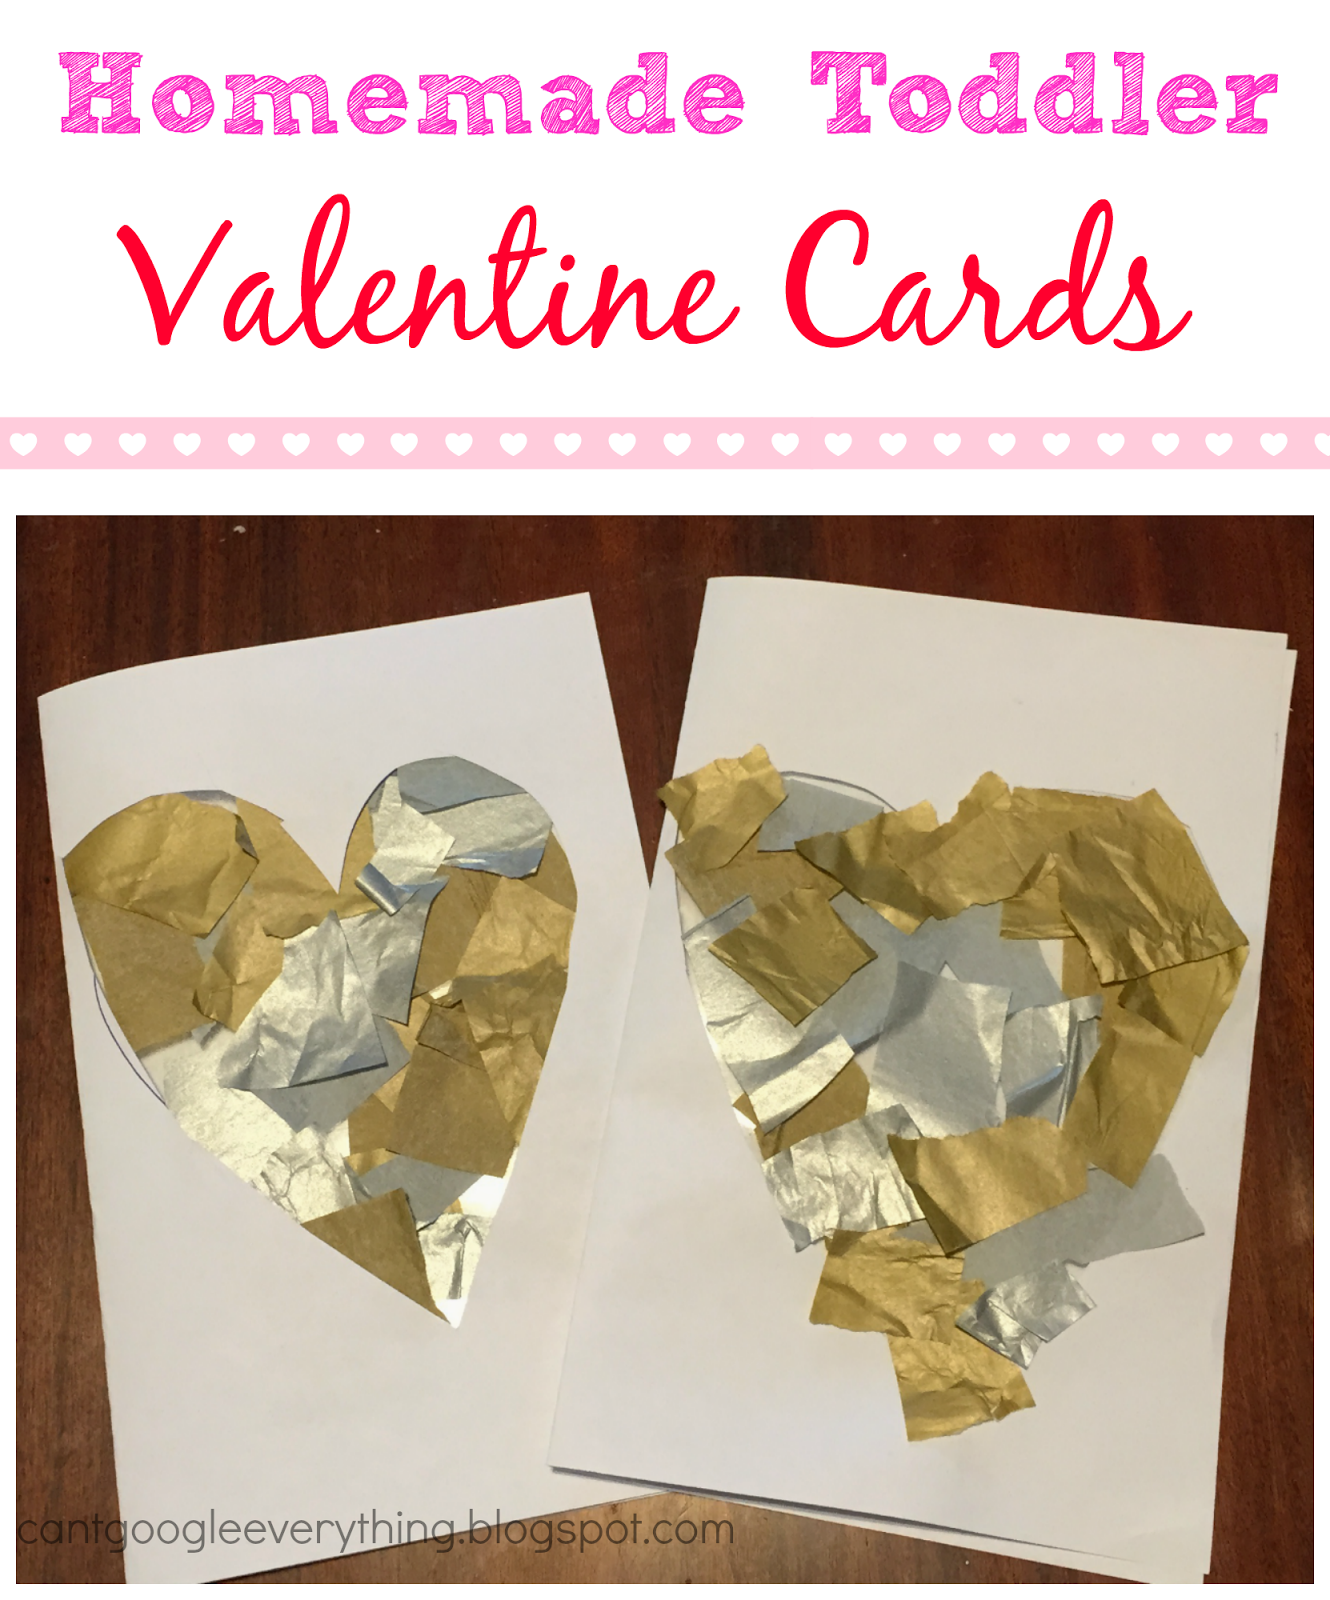 Easy Toddler Valentine Cards My Mini Adventurer – Toddler Valentine Cards